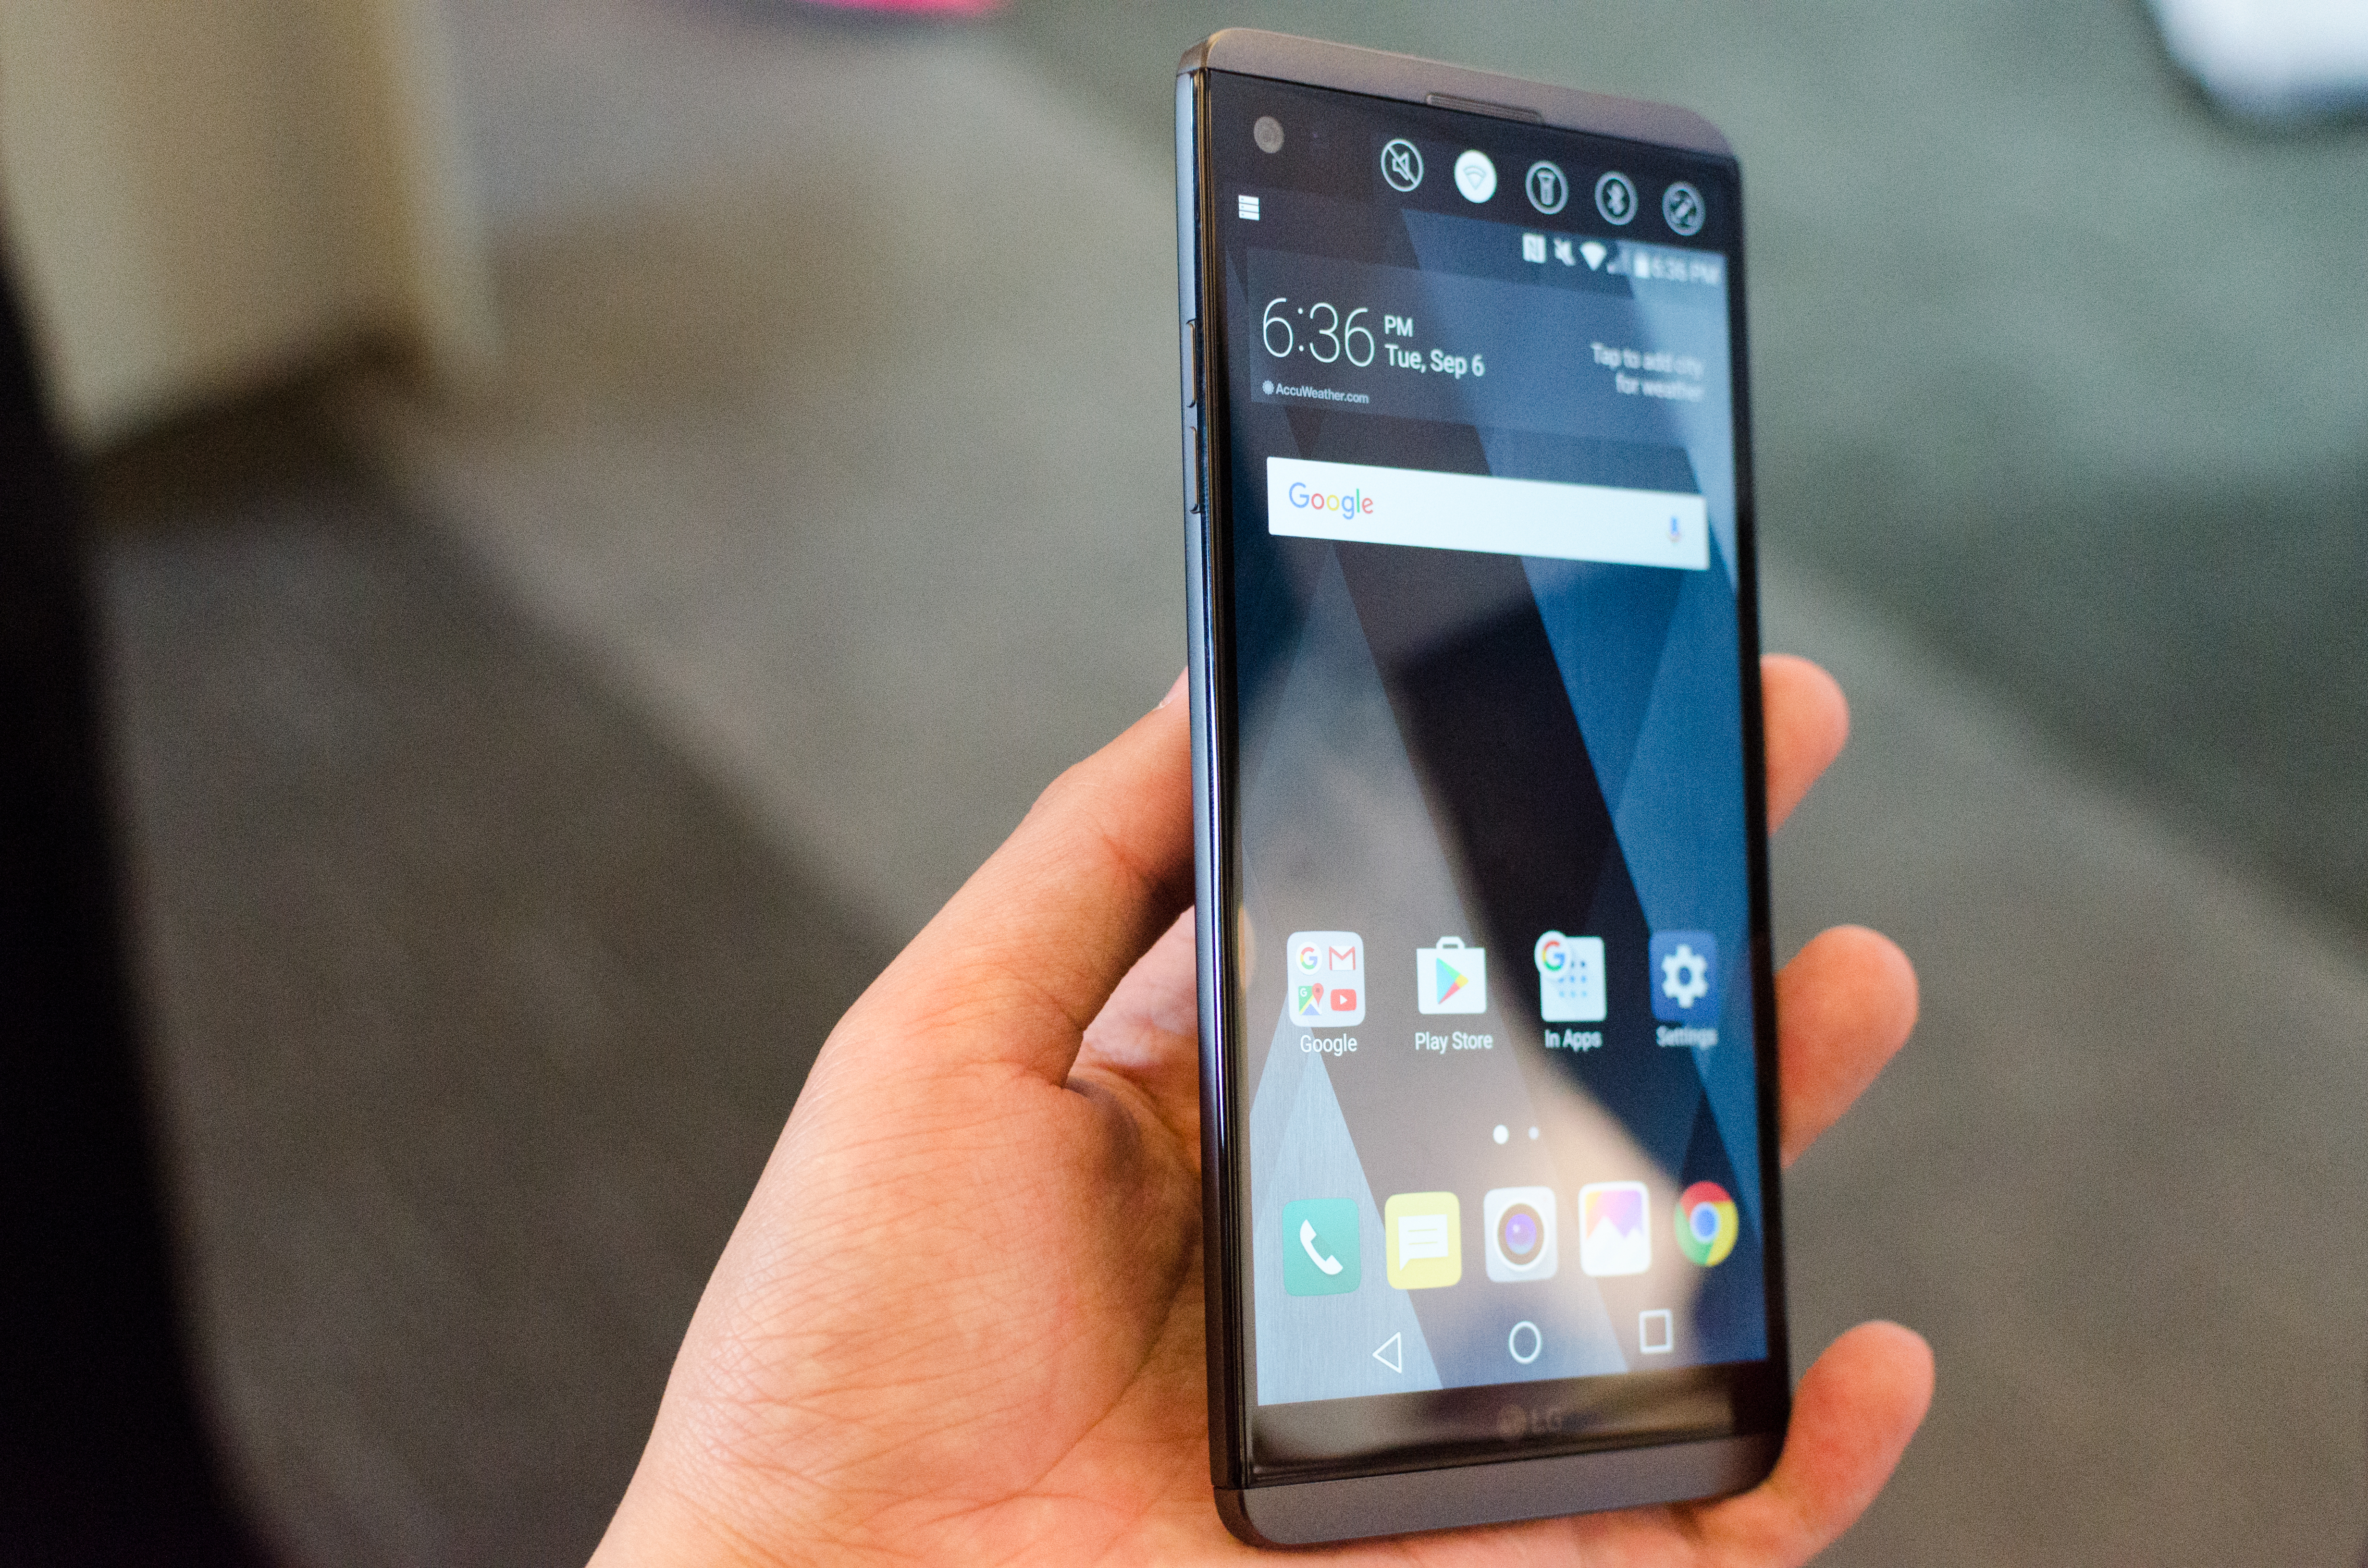 Hands On With the LG V20